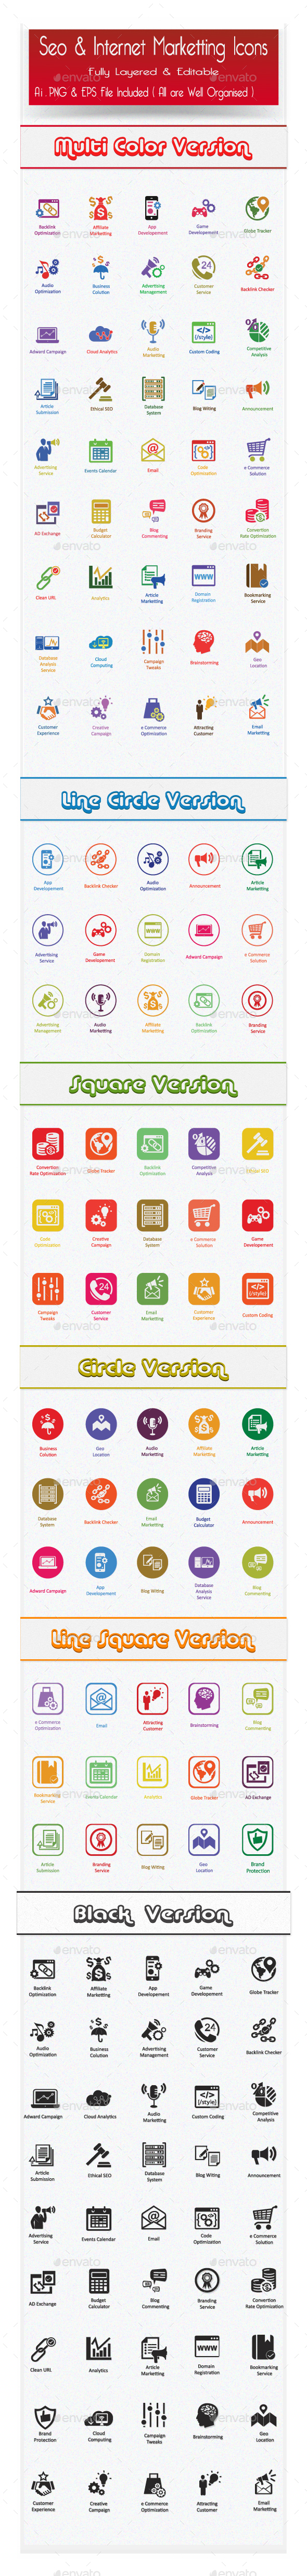 GraphicRiver SEO Services Icons and Web Marketing Icons 11358846